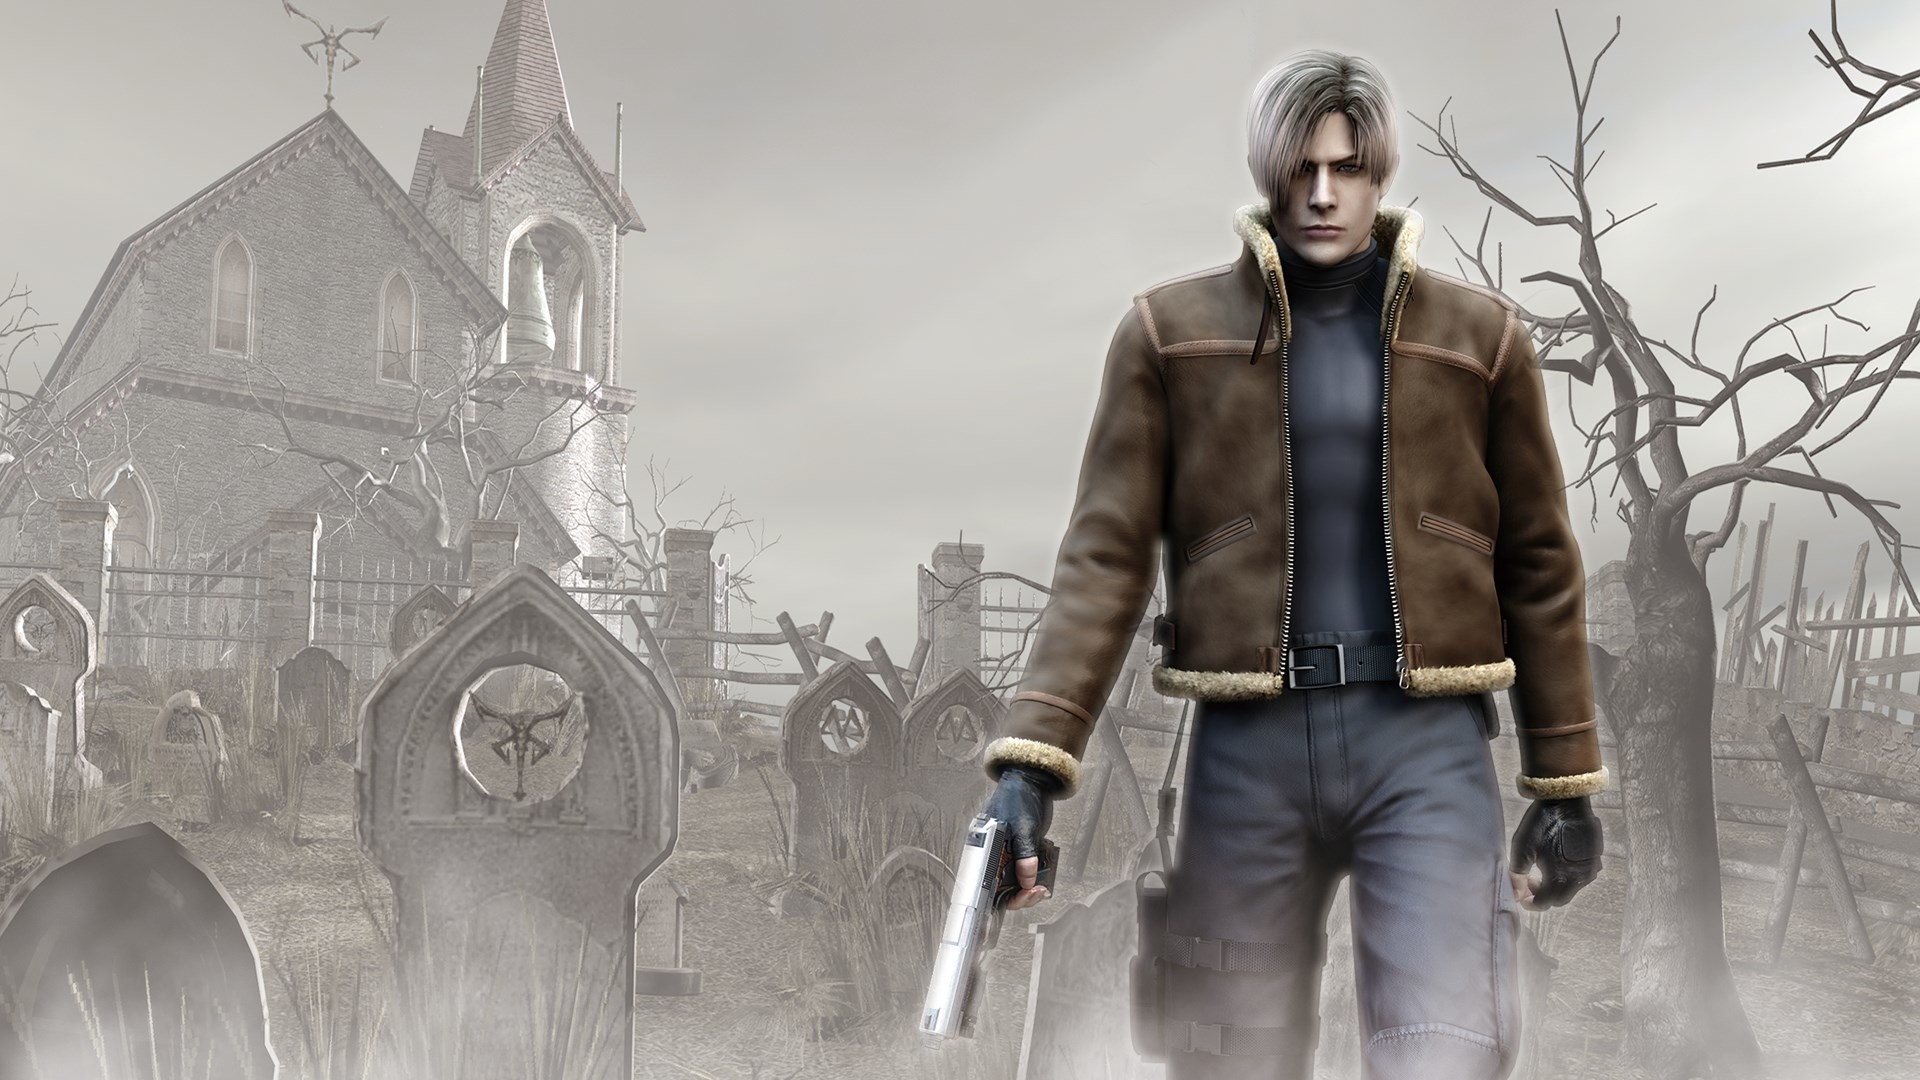 Resident Evil 4 Leon S Kennedy Wallpaper Hd Games 4k Wallpapers Images Photos And Background